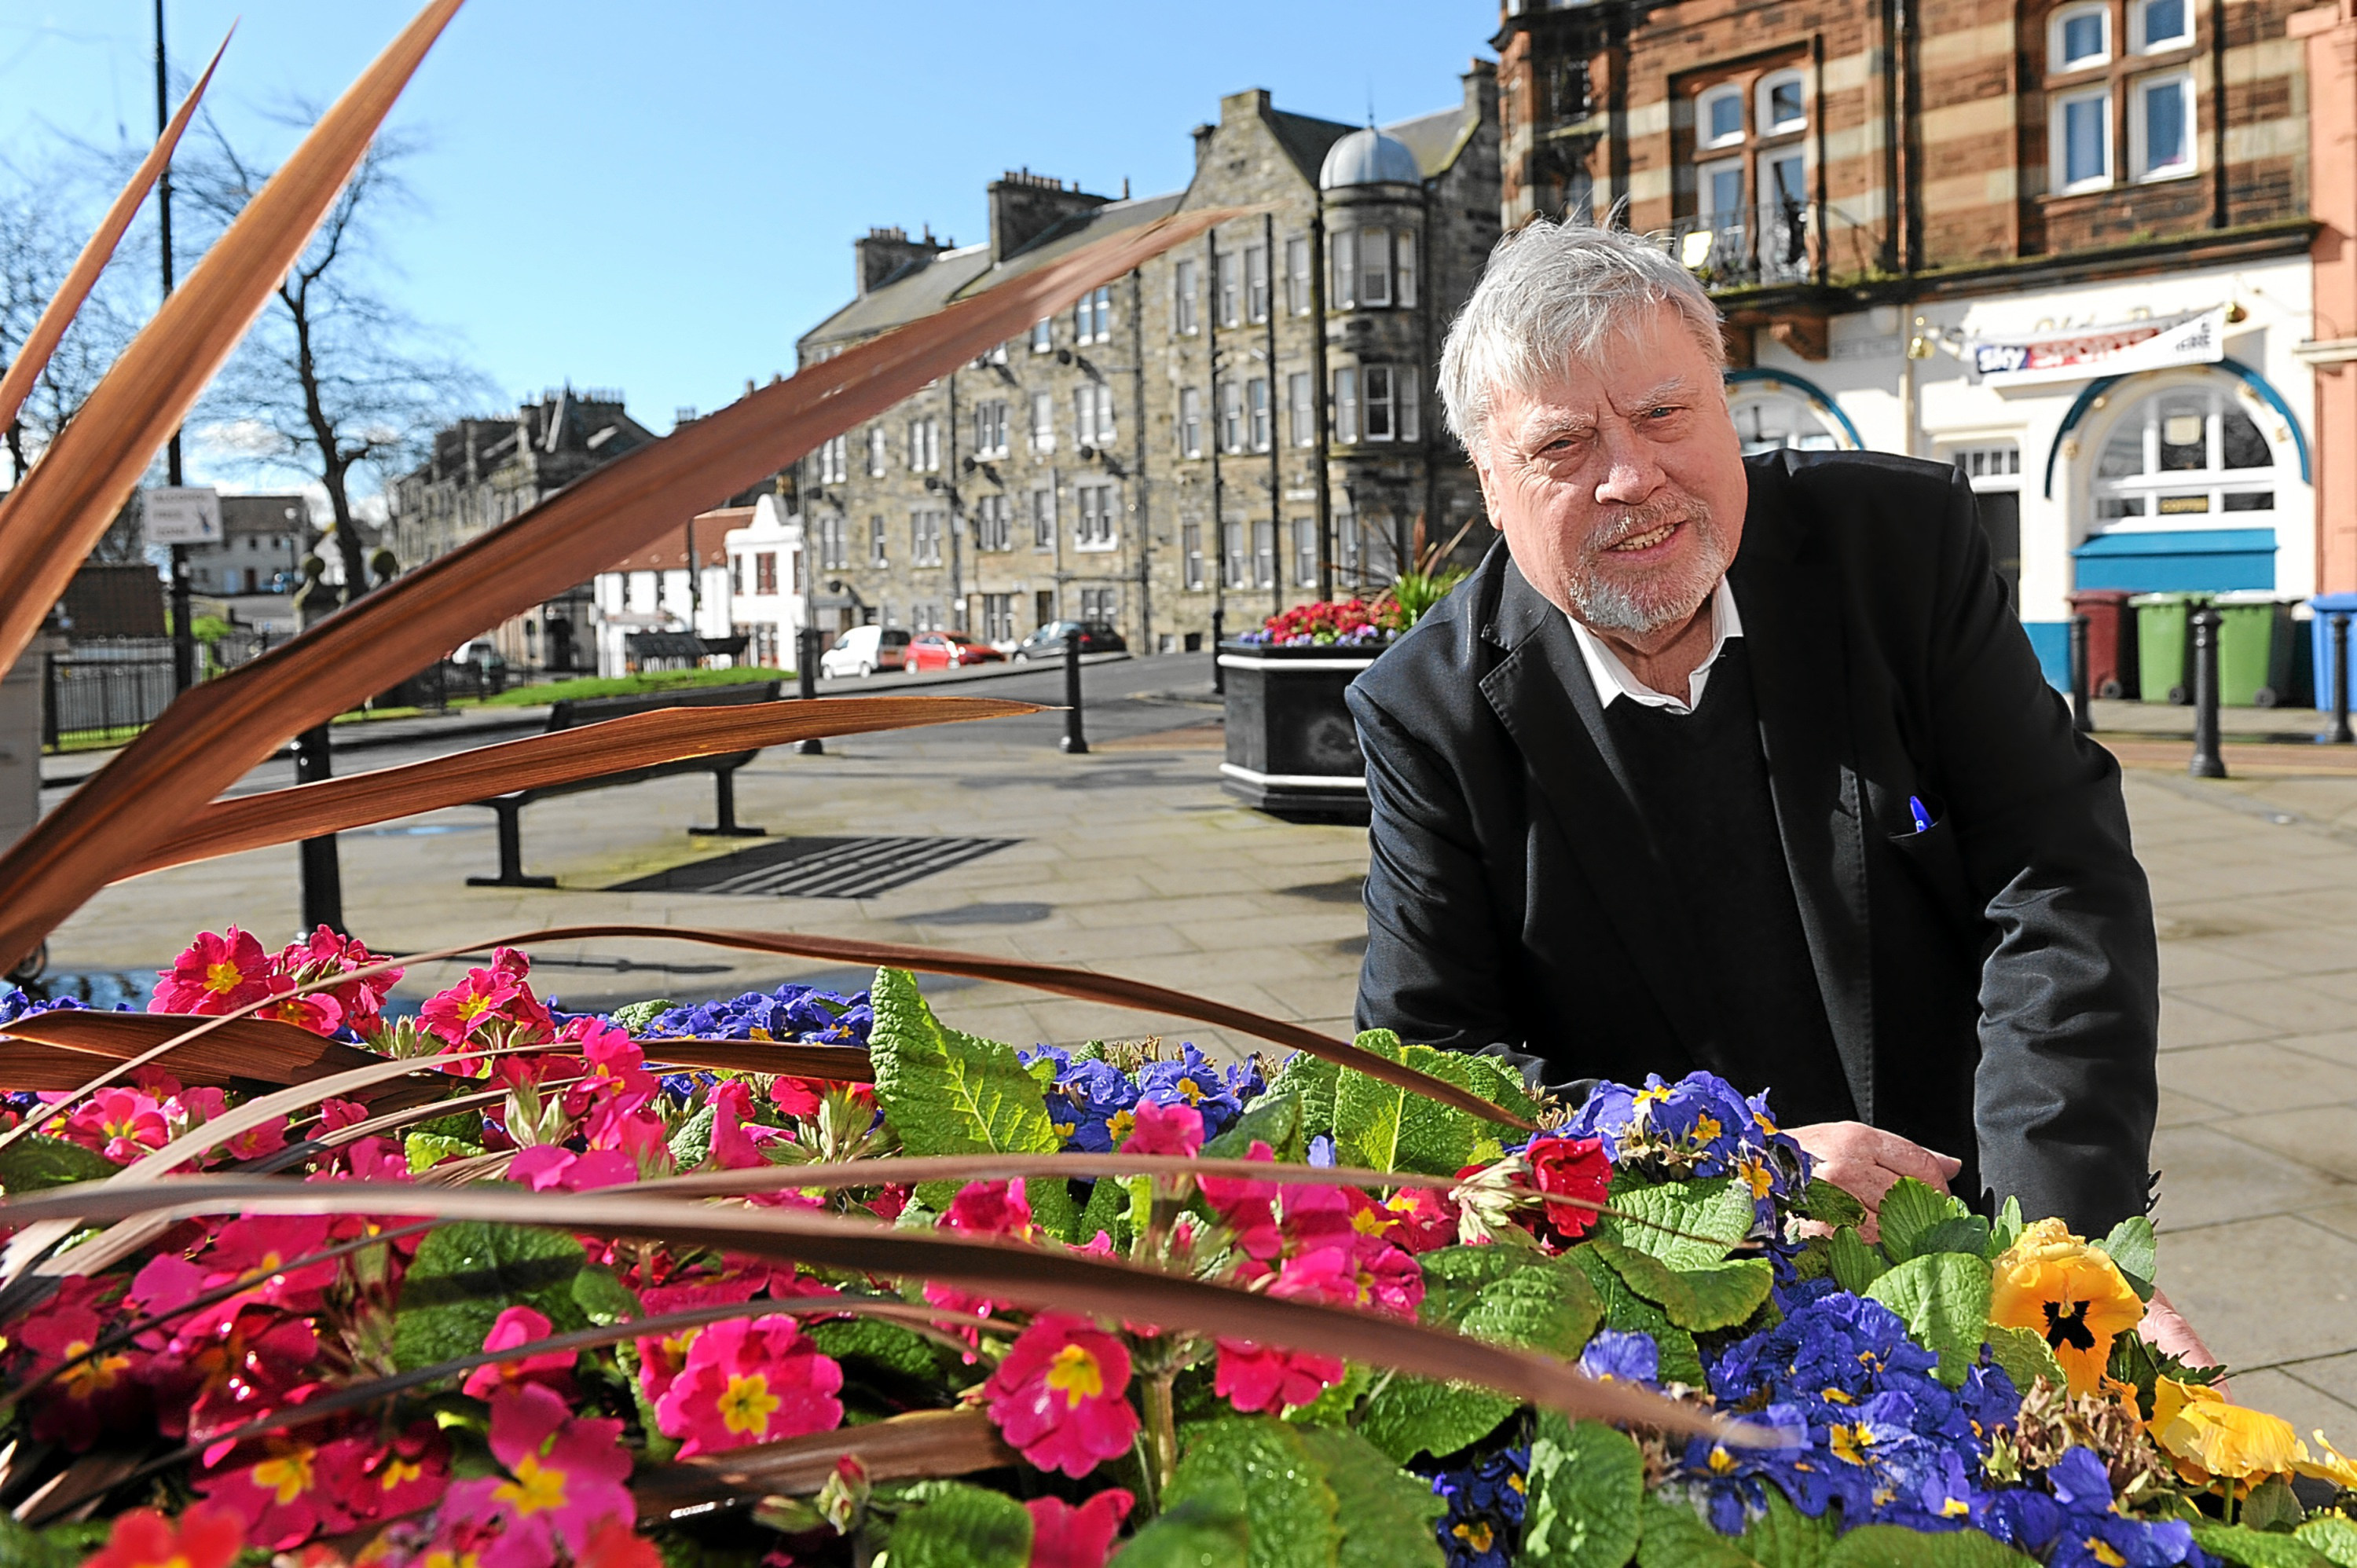 George Kay is pleased to see the town looking good for summer.